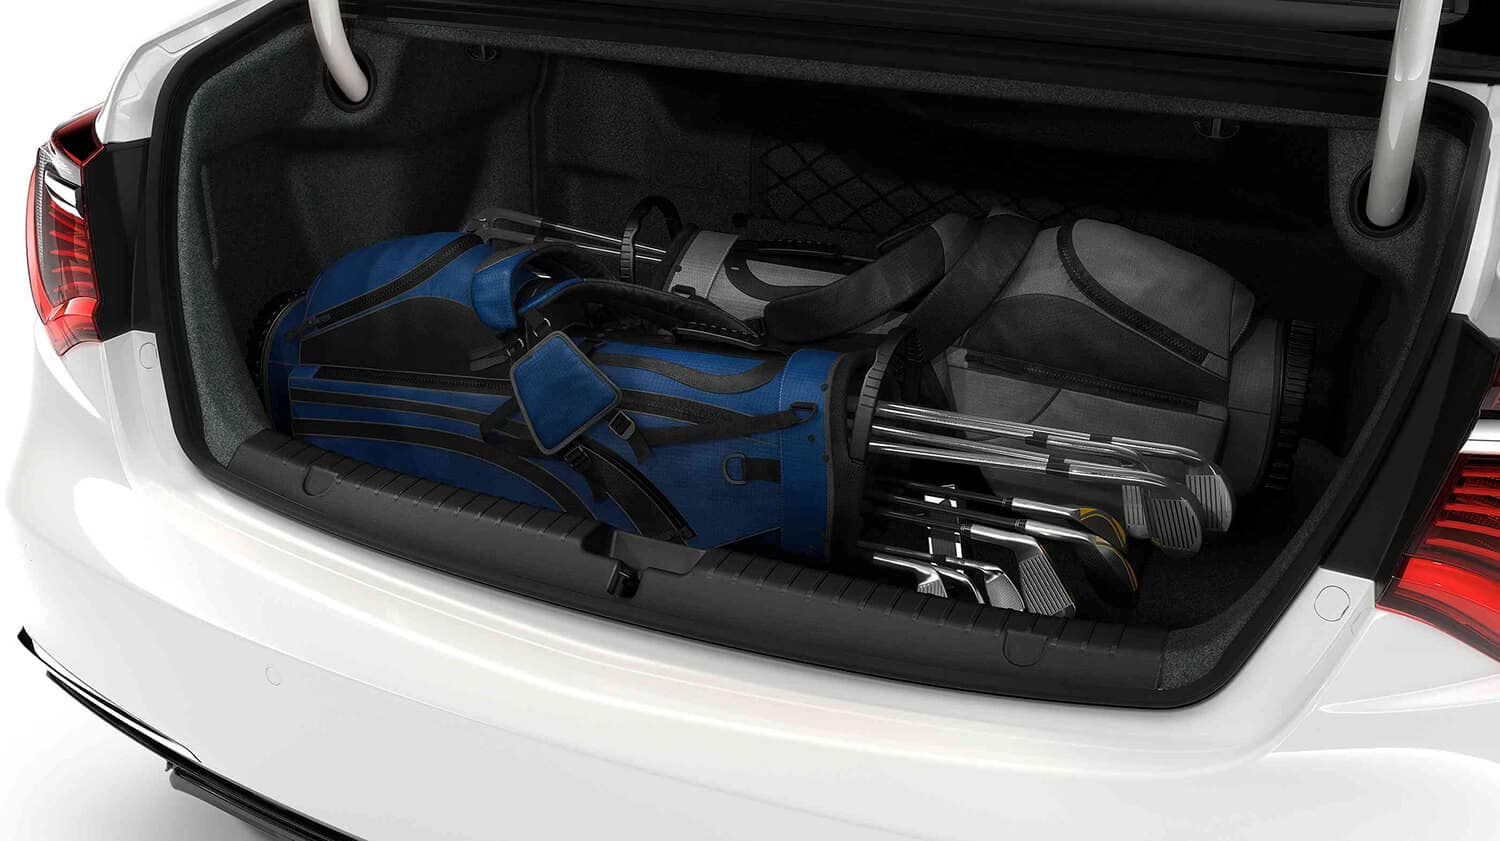 2018 Acura RLX Interior Trunk Space